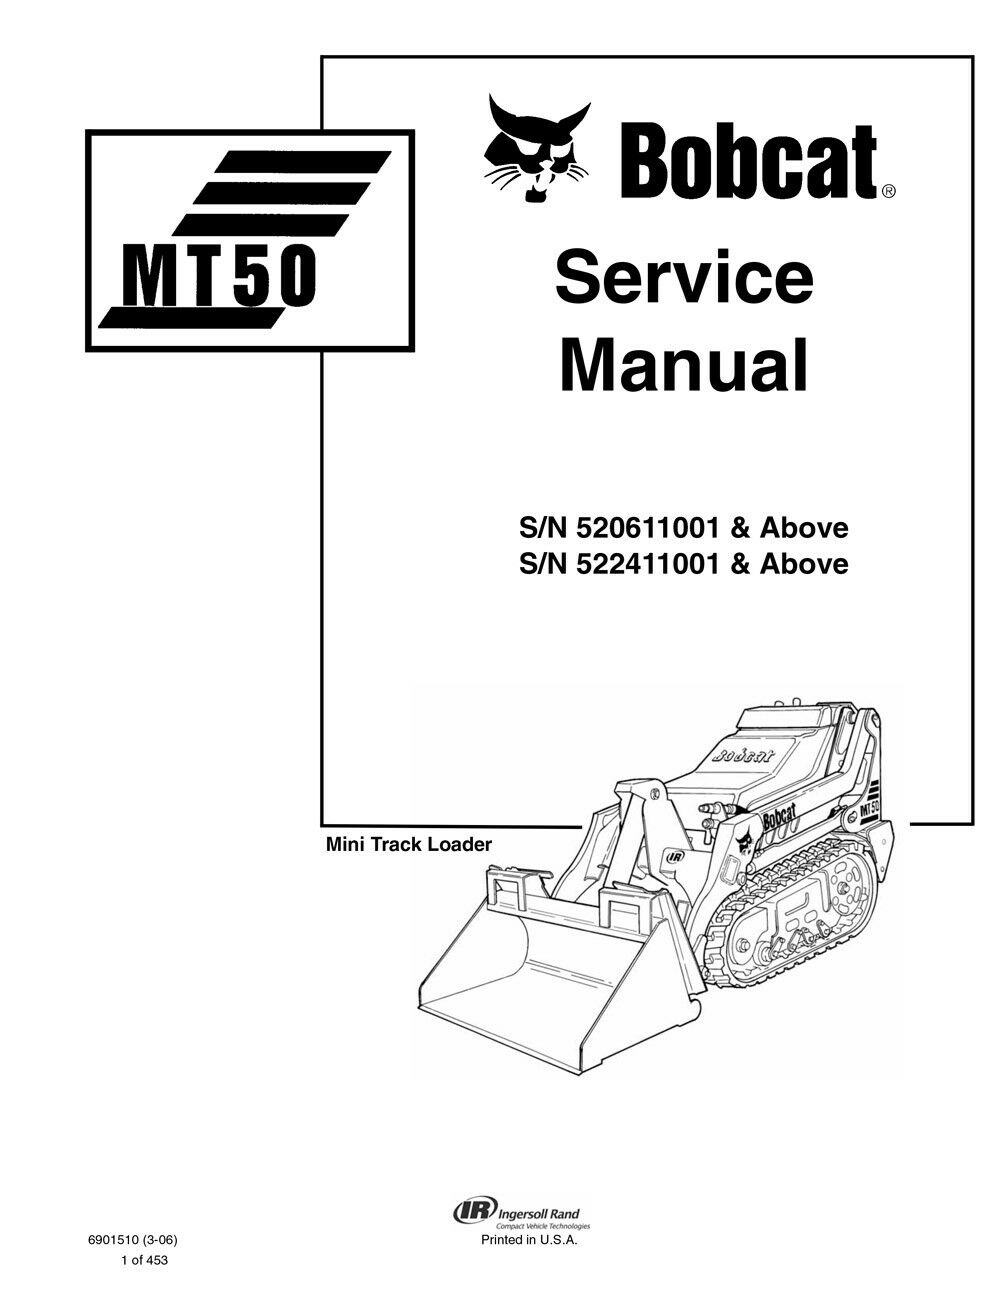 1974 fiat 124 spider wiring diagram fiat 124 exhaust